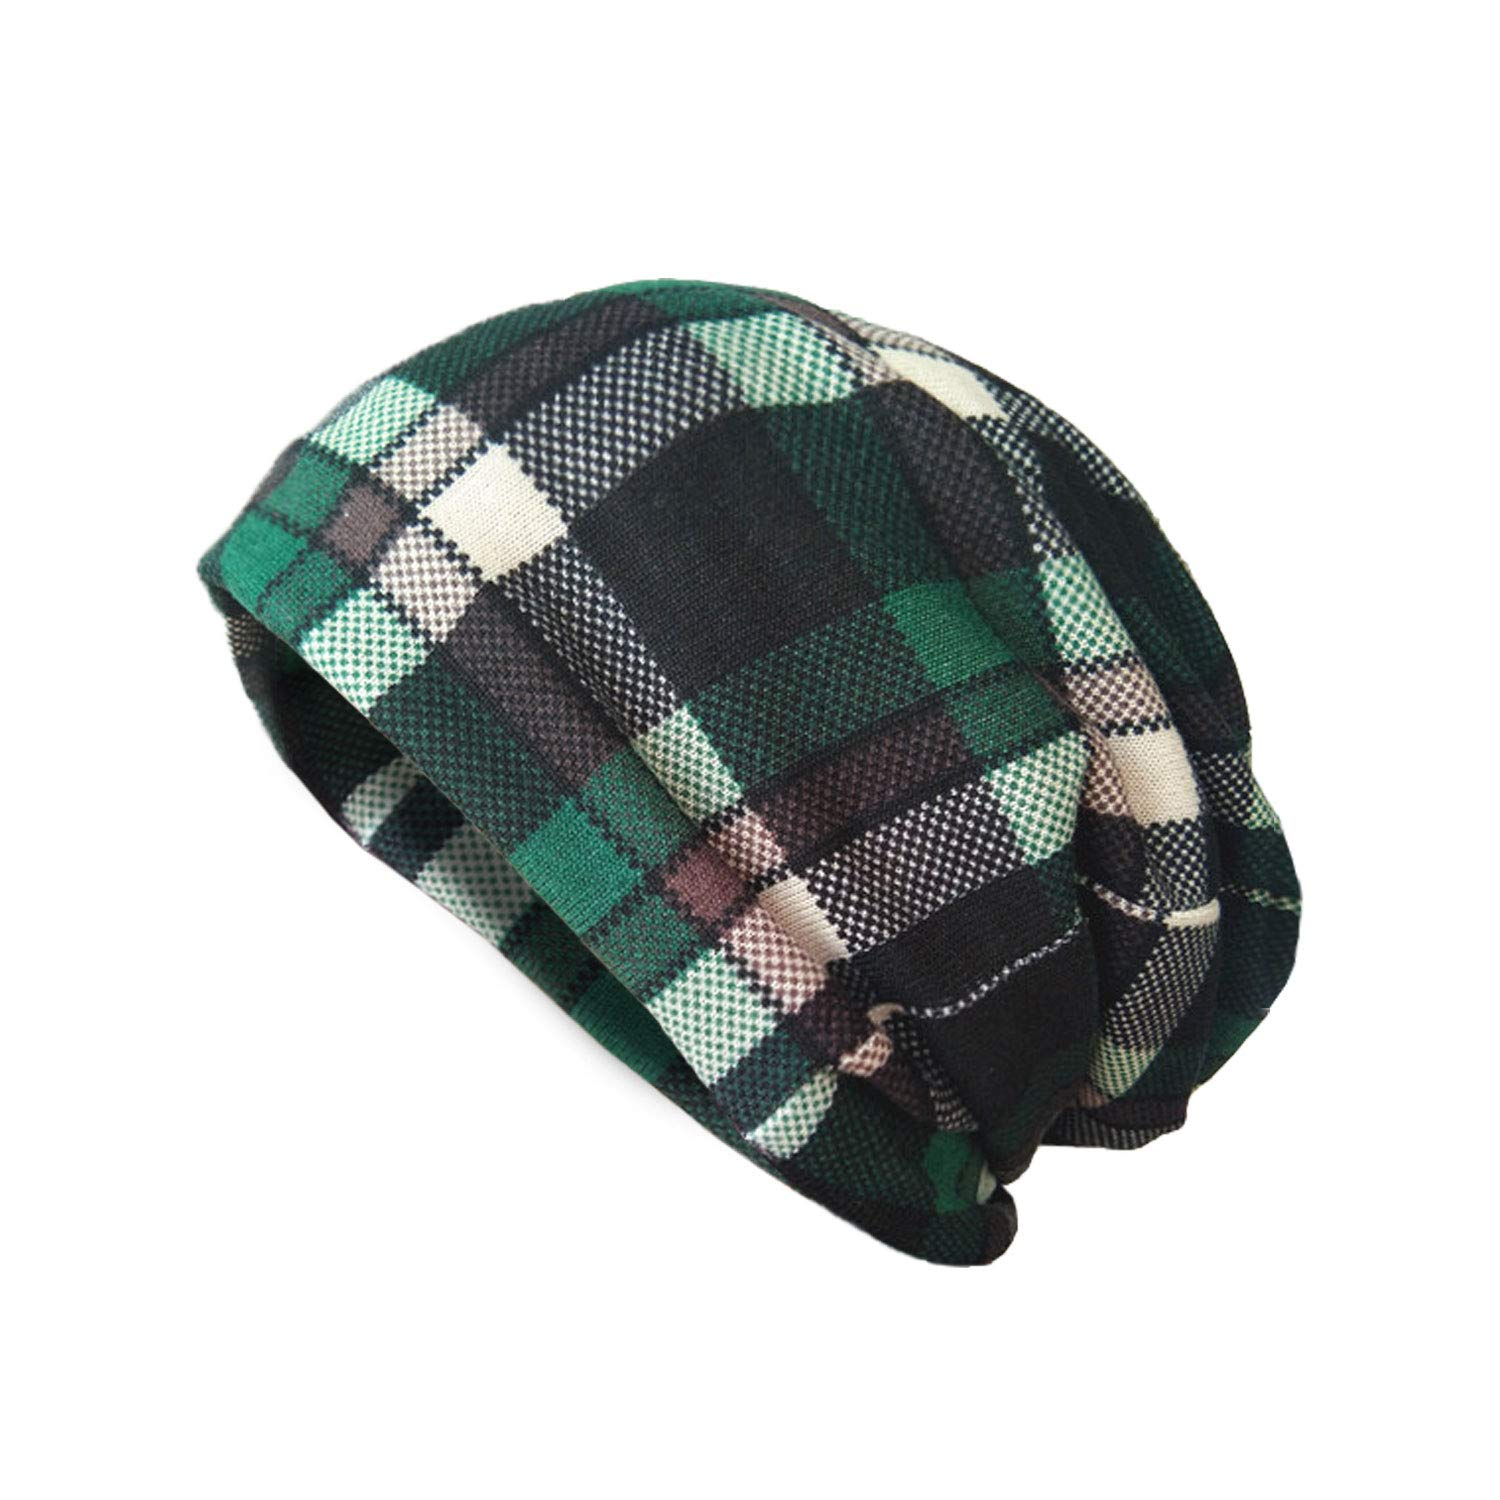 AVOIN colorlife Unisex St Patricks Day Green Plaid Beanie Hat 9b5586a0ca5